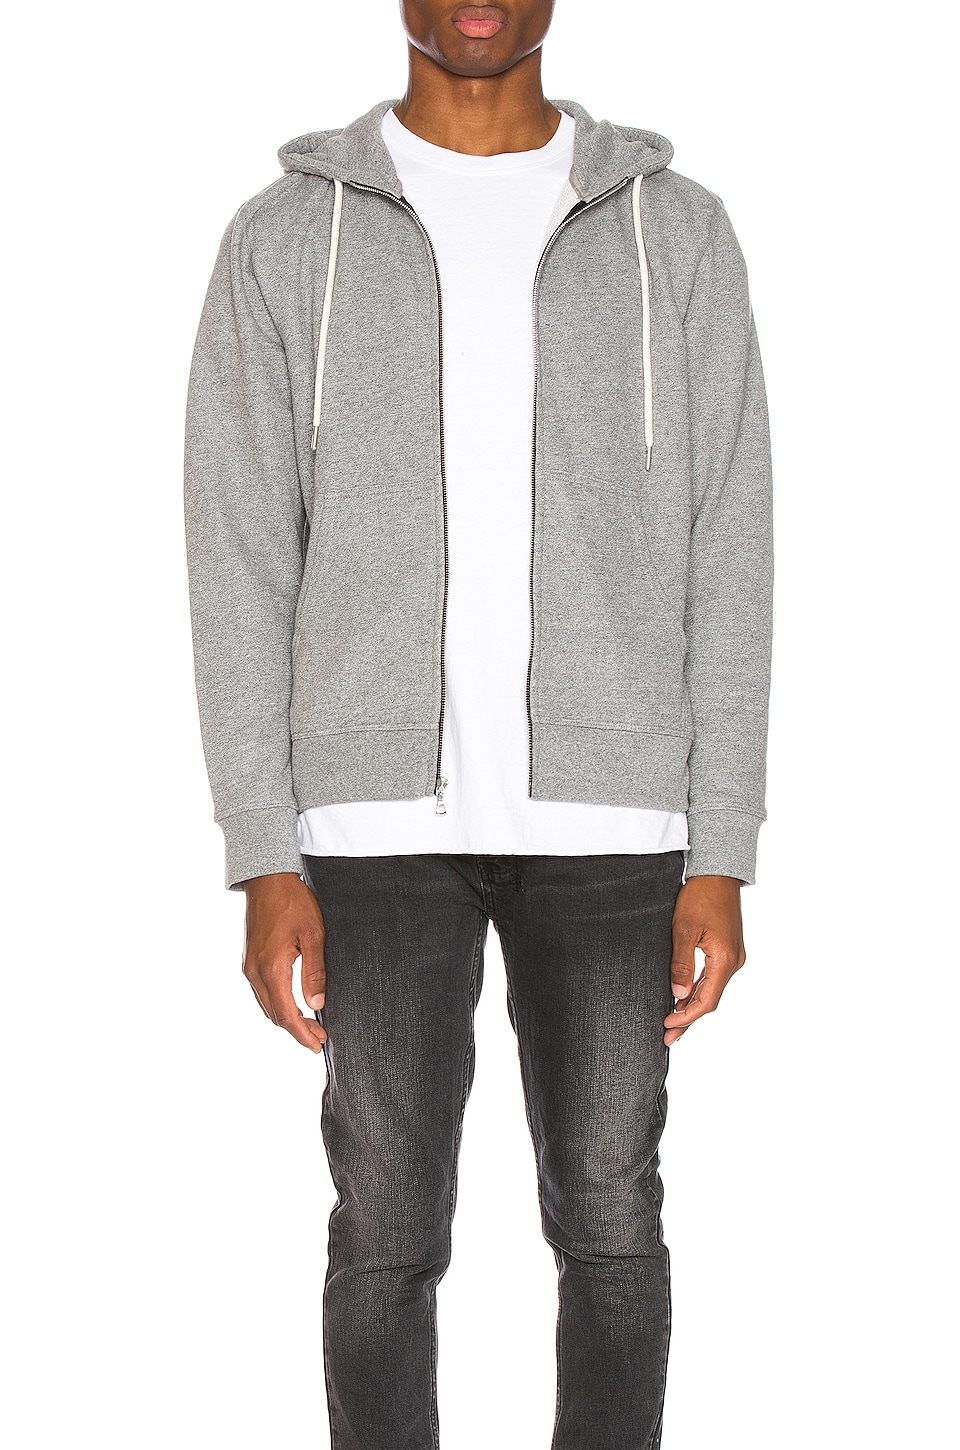 JOHN ELLIOTT Flash 2 Dual Fullzip in Dark Grey